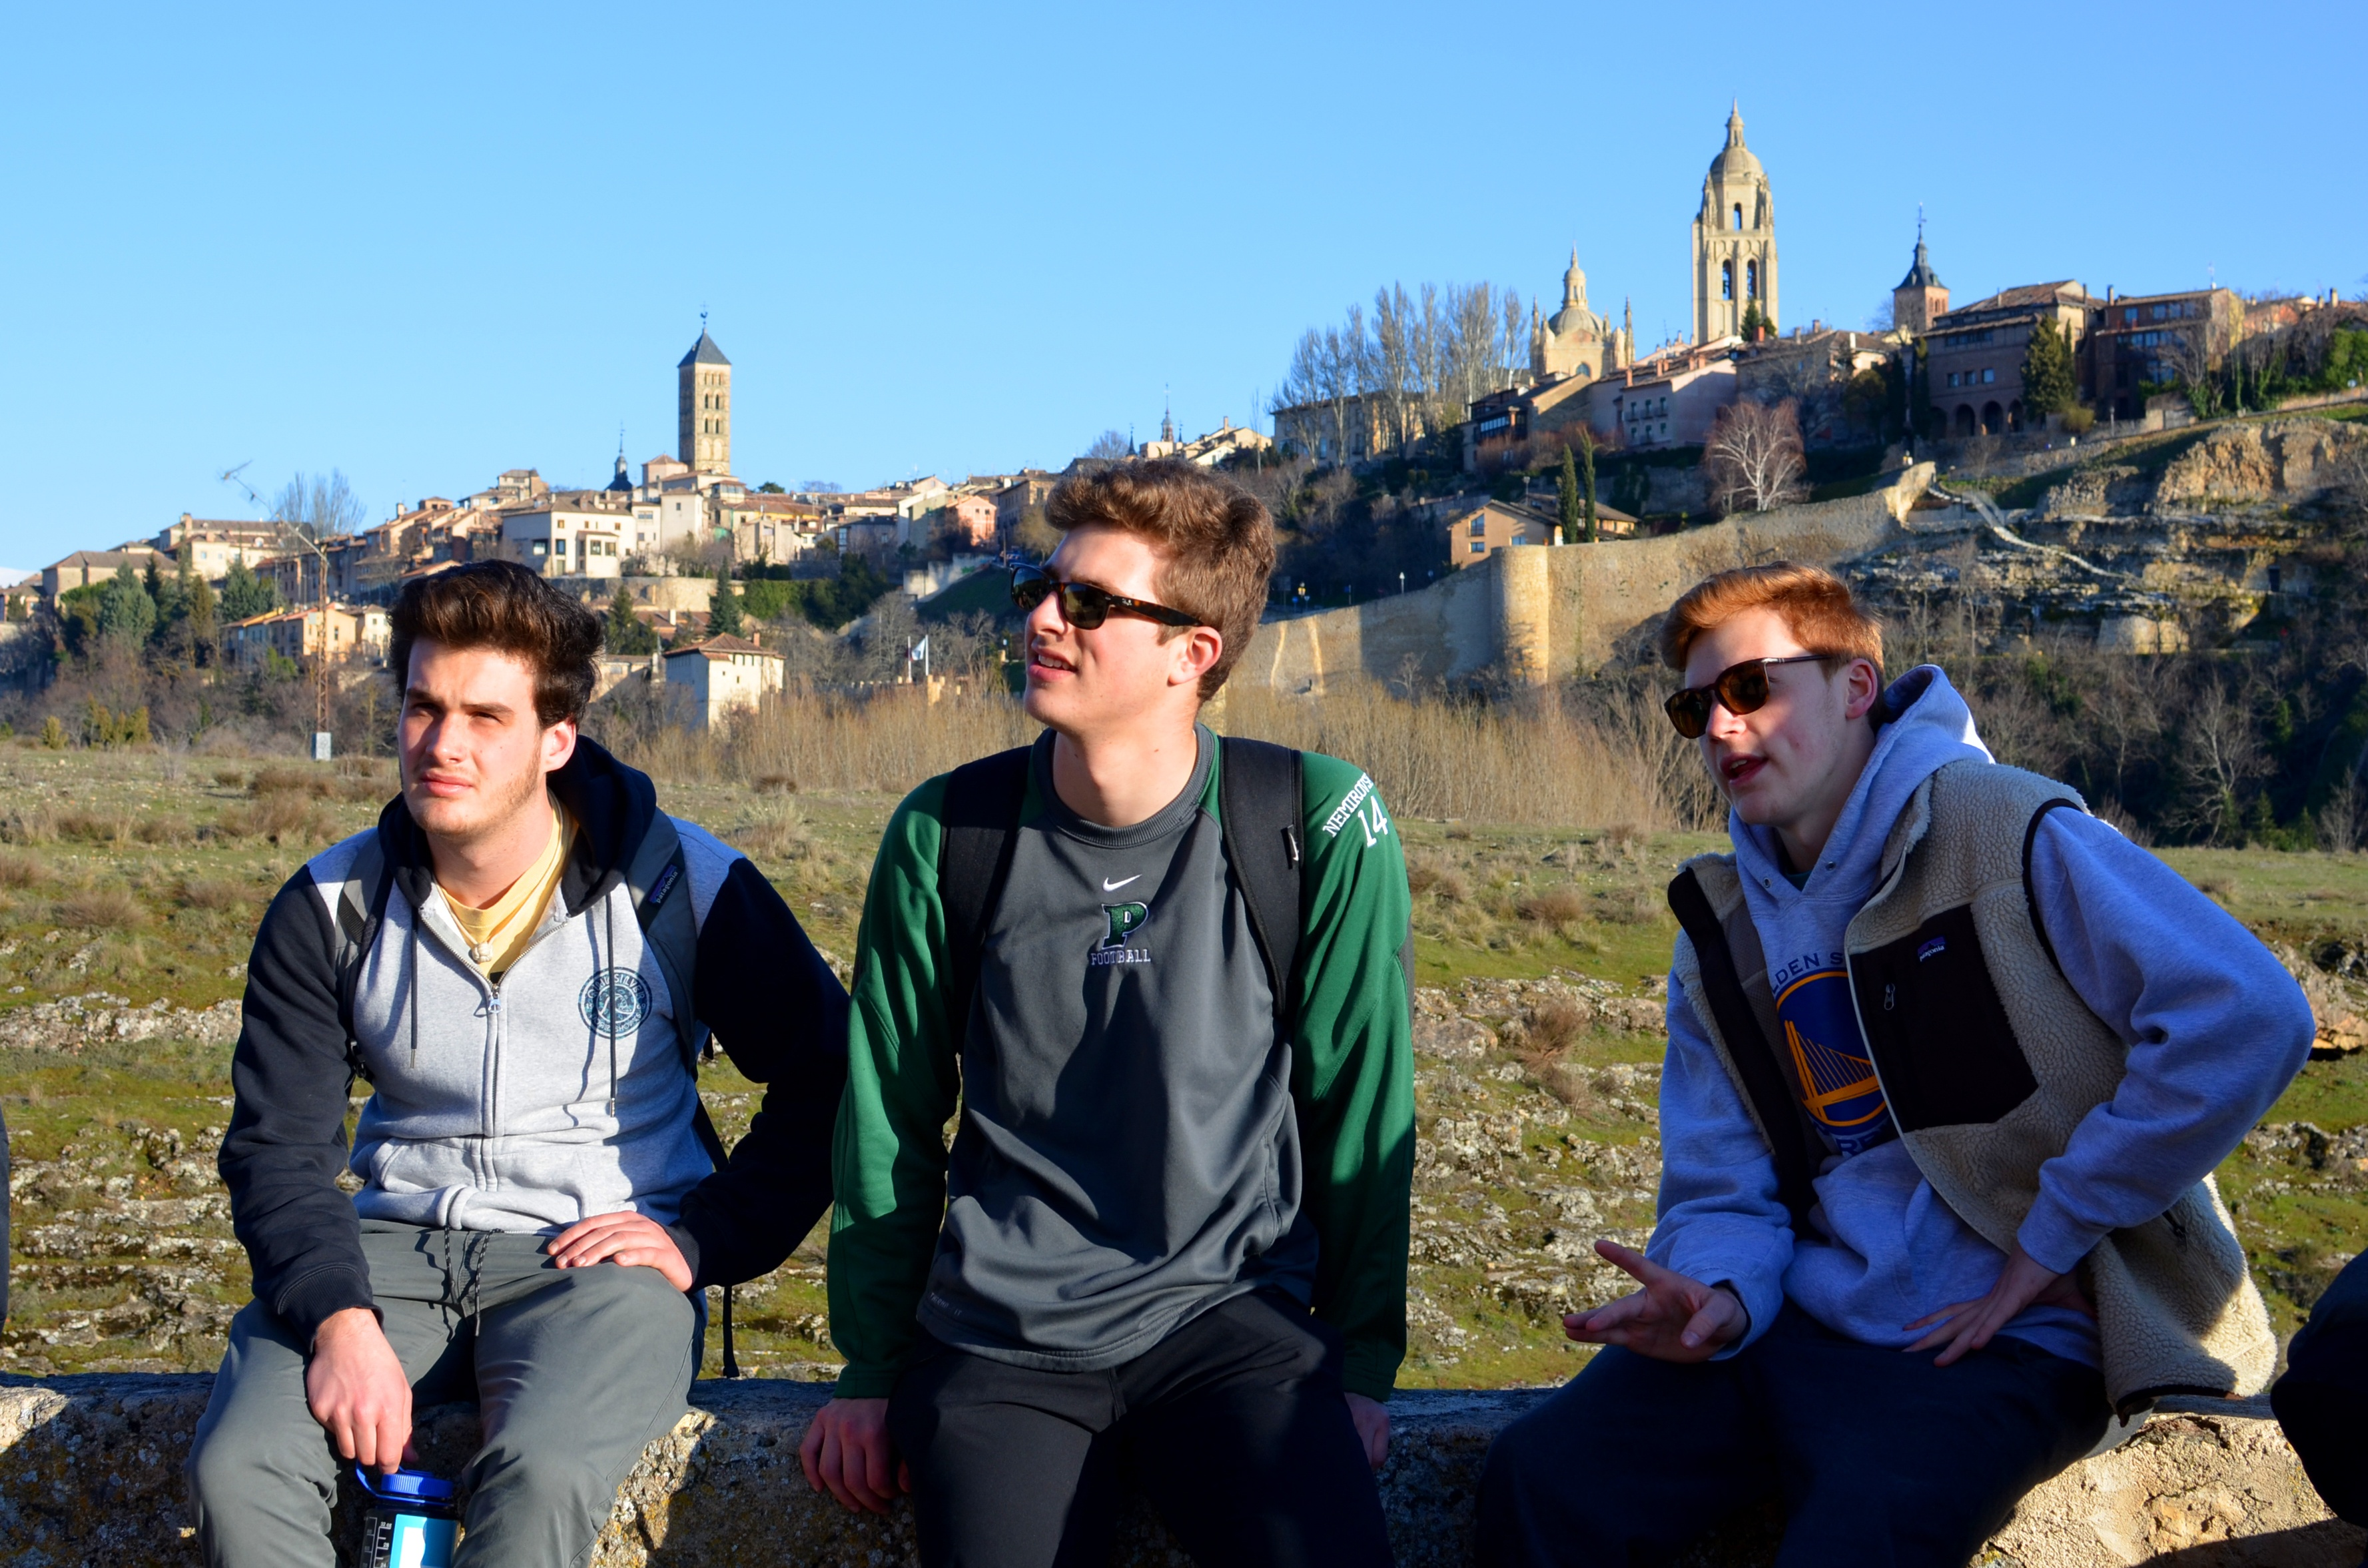 Proctor en Segovia discusses the layers of history of Segovia